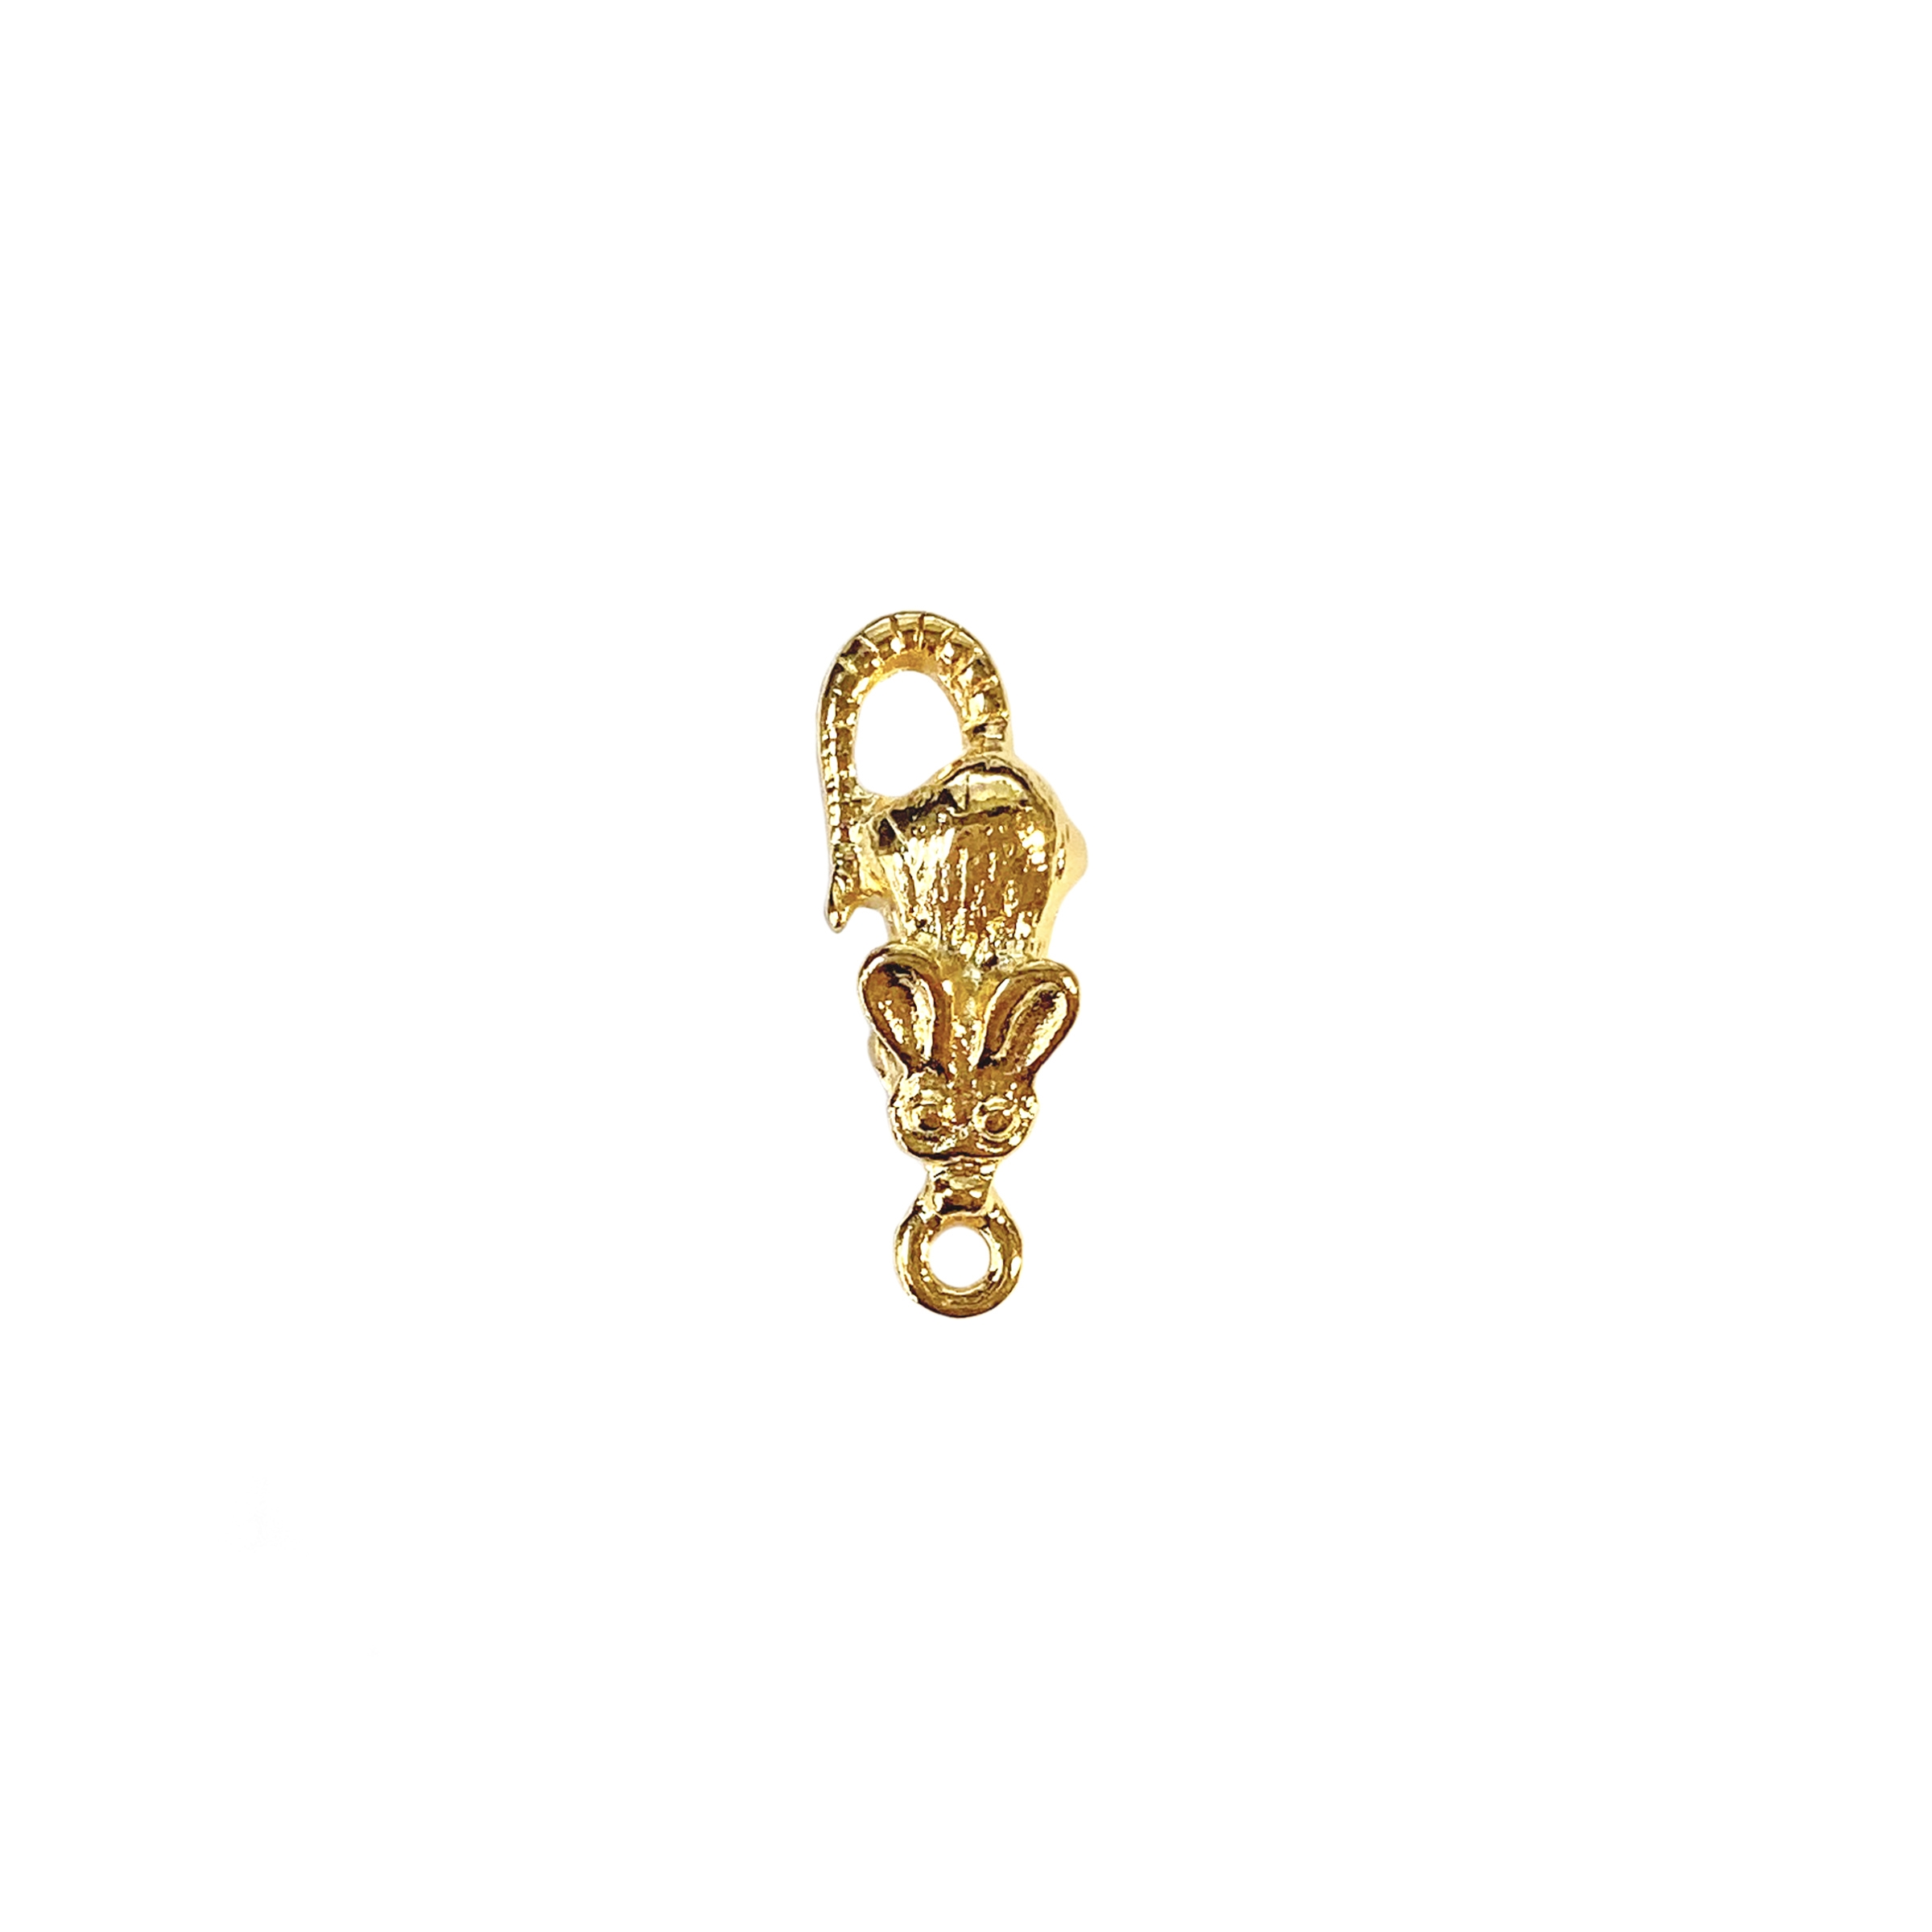 mouse charm, 22K gold finish pewter, lead-free pewter, B'sue by 1928, vintage jewelry parts, pewter jewelry parts, nickel-free, US made, 1928 jewelry, B'sue Boutiques, vintage supplies, jewelry supplies, pewter, 18x7mm, mouse, charm, antique gold, 01399